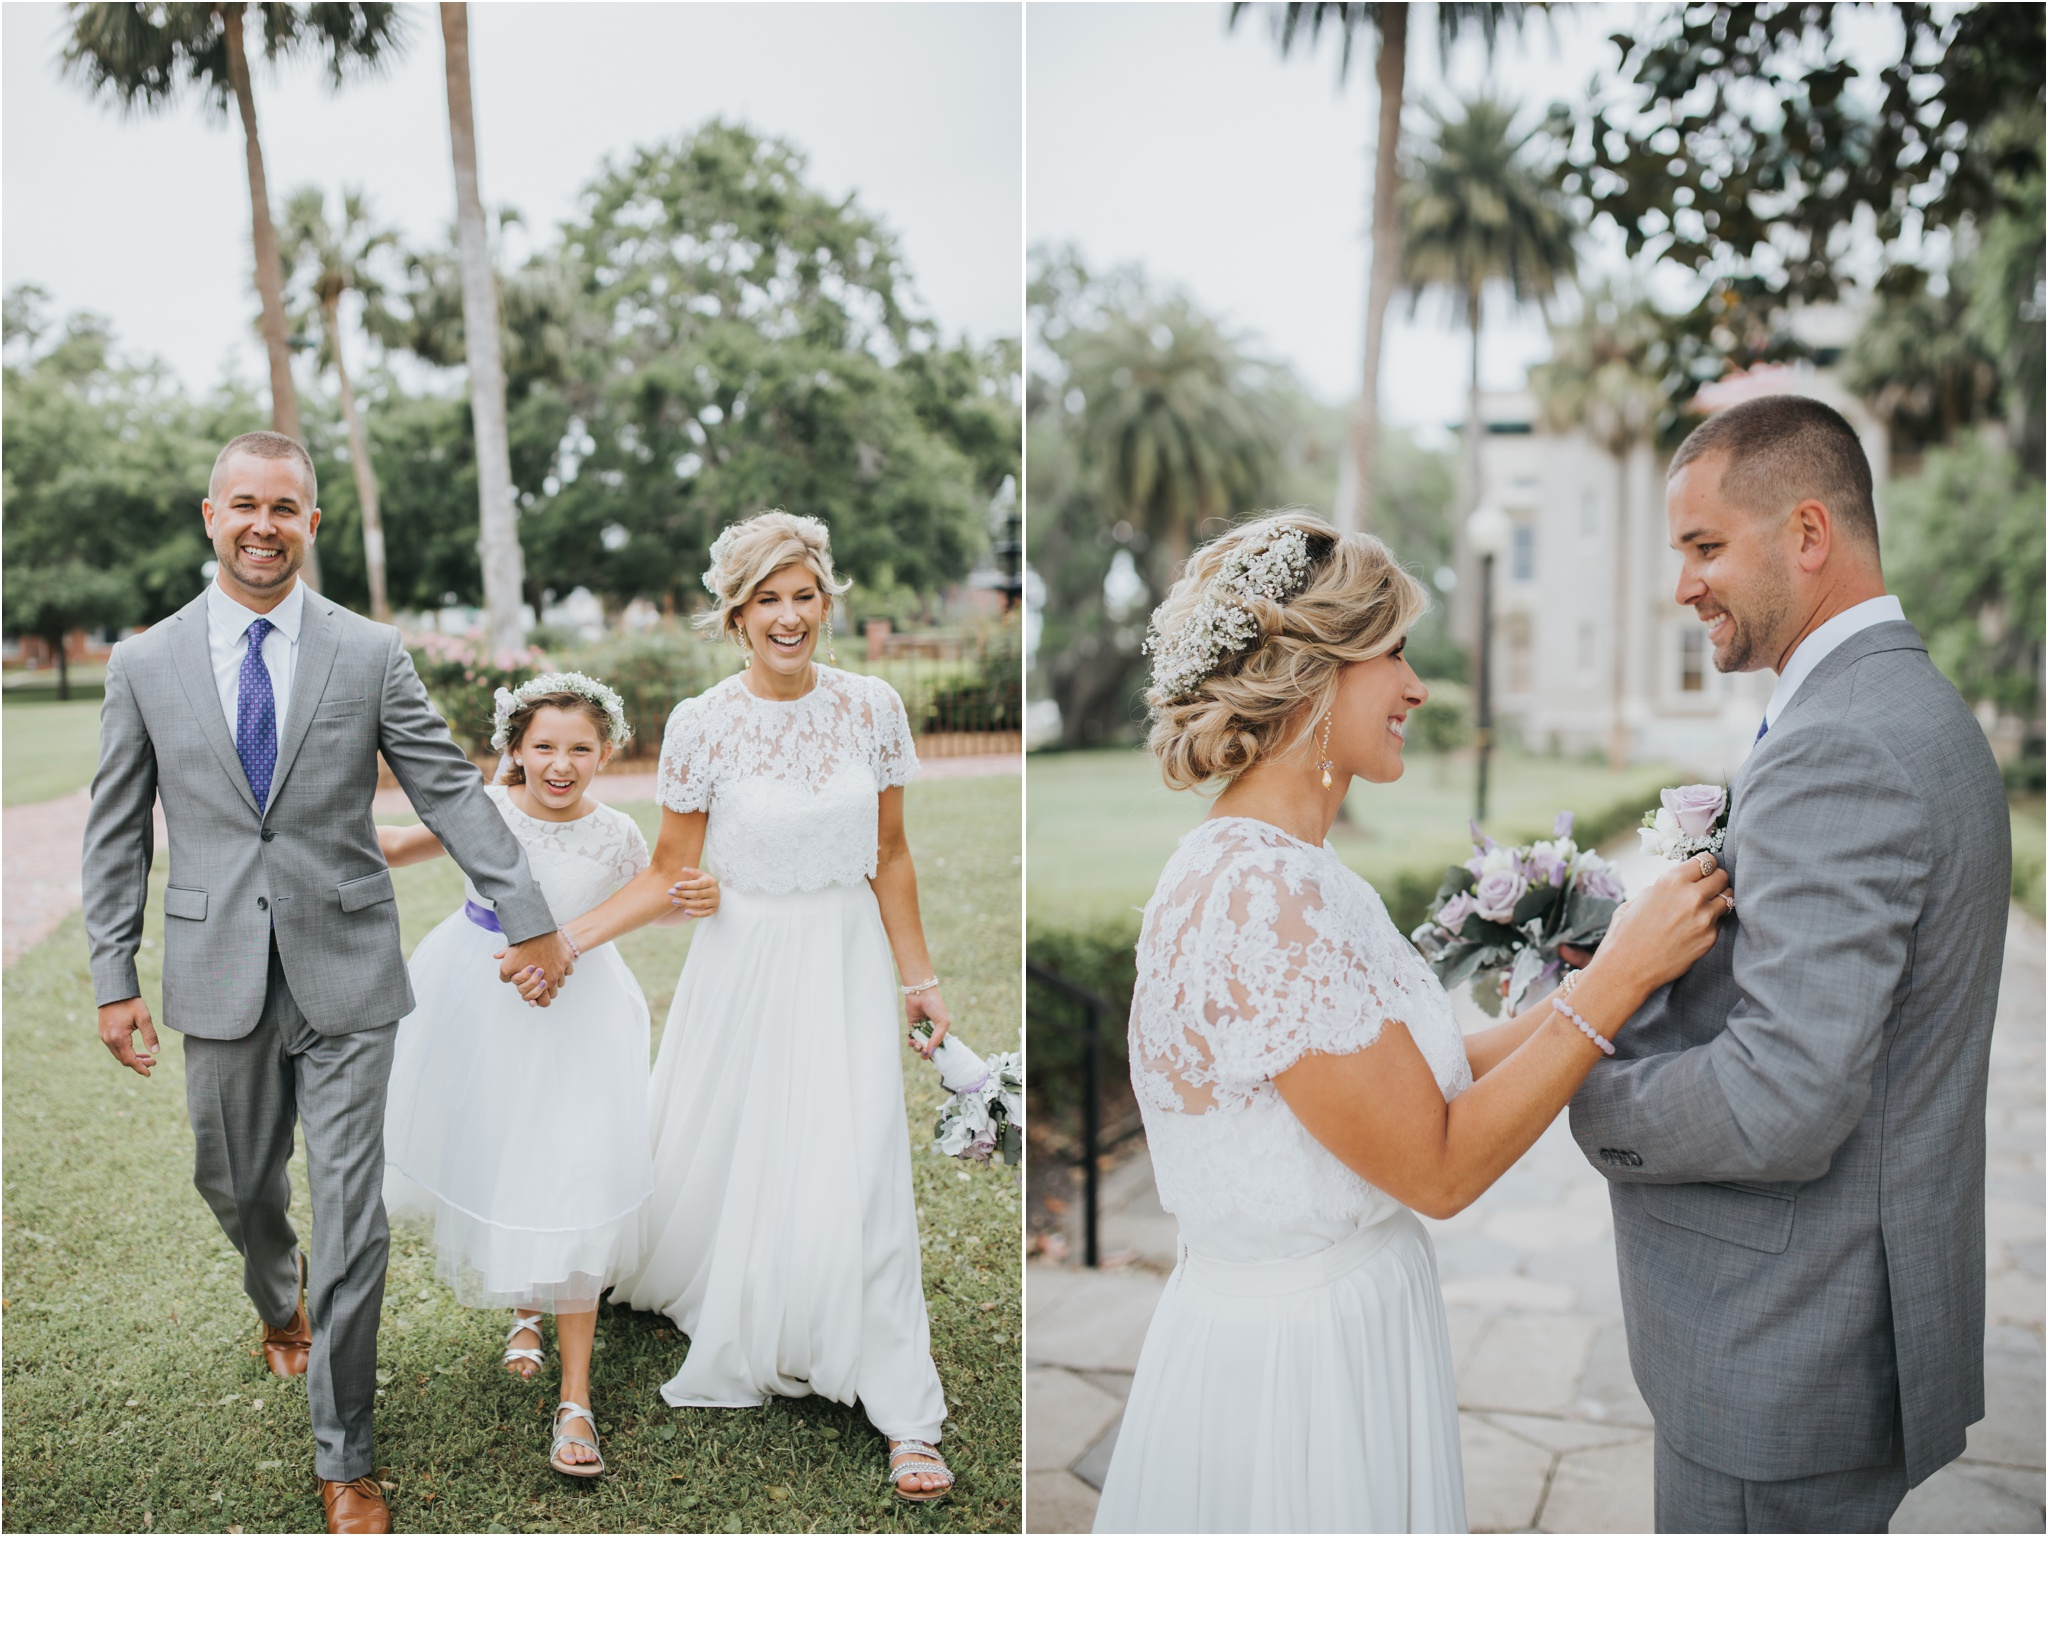 Rainey_Gregg_Photography_St._Simons_Island_Georgia_California_Wedding_Portrait_Photography_1511.jpg